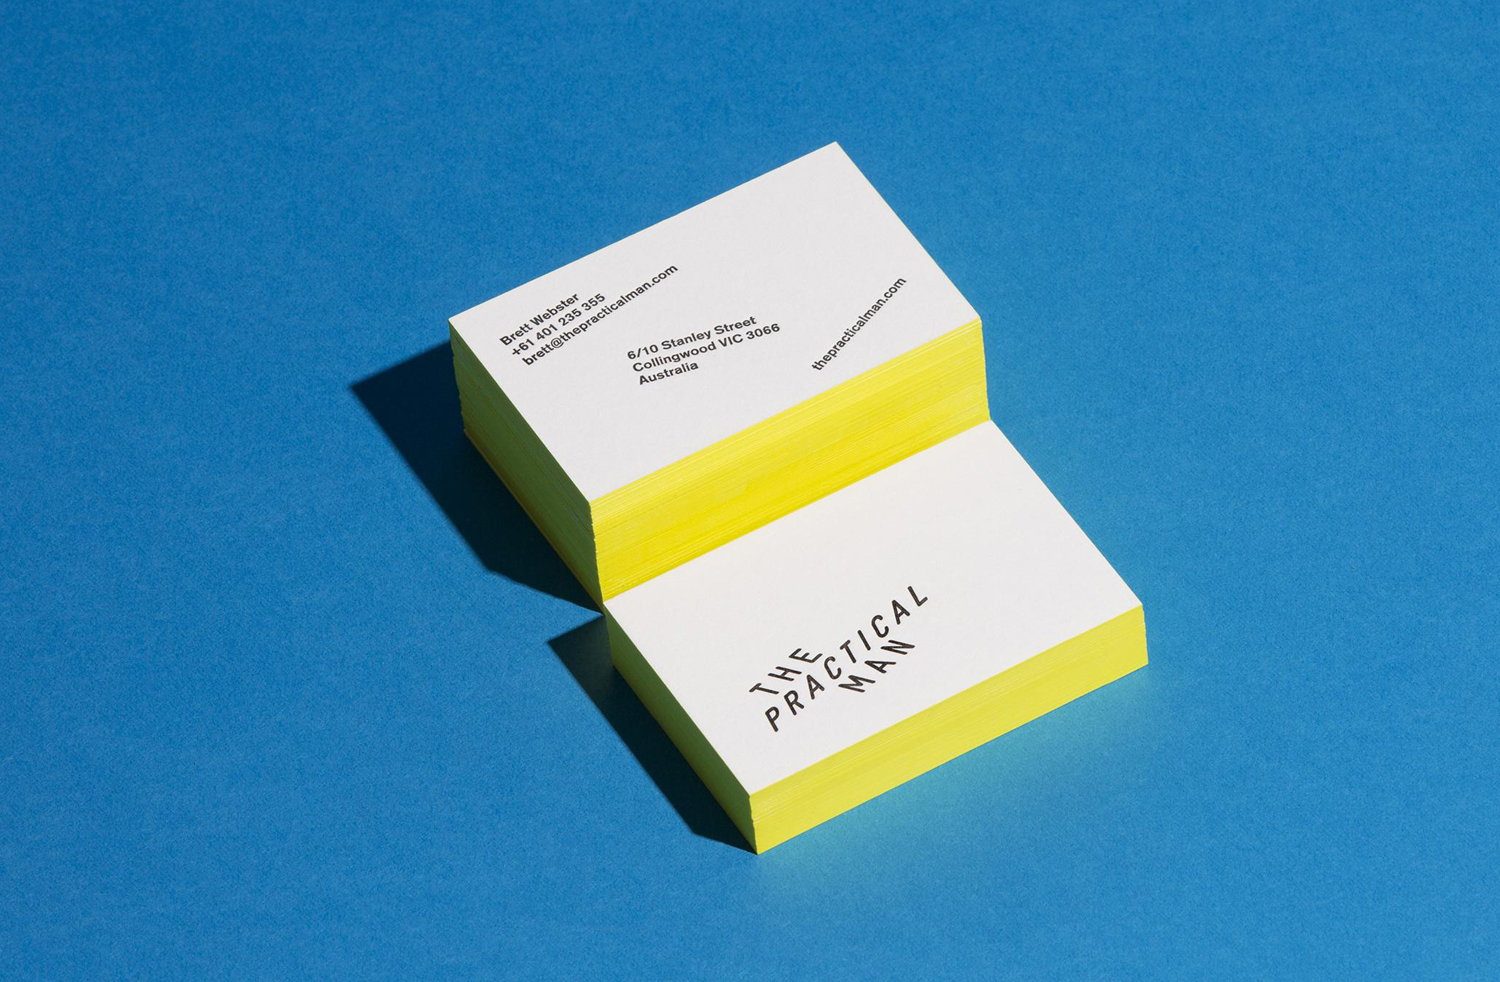 Letterpress business card with painted edges for The Practical Man designed by Garbett